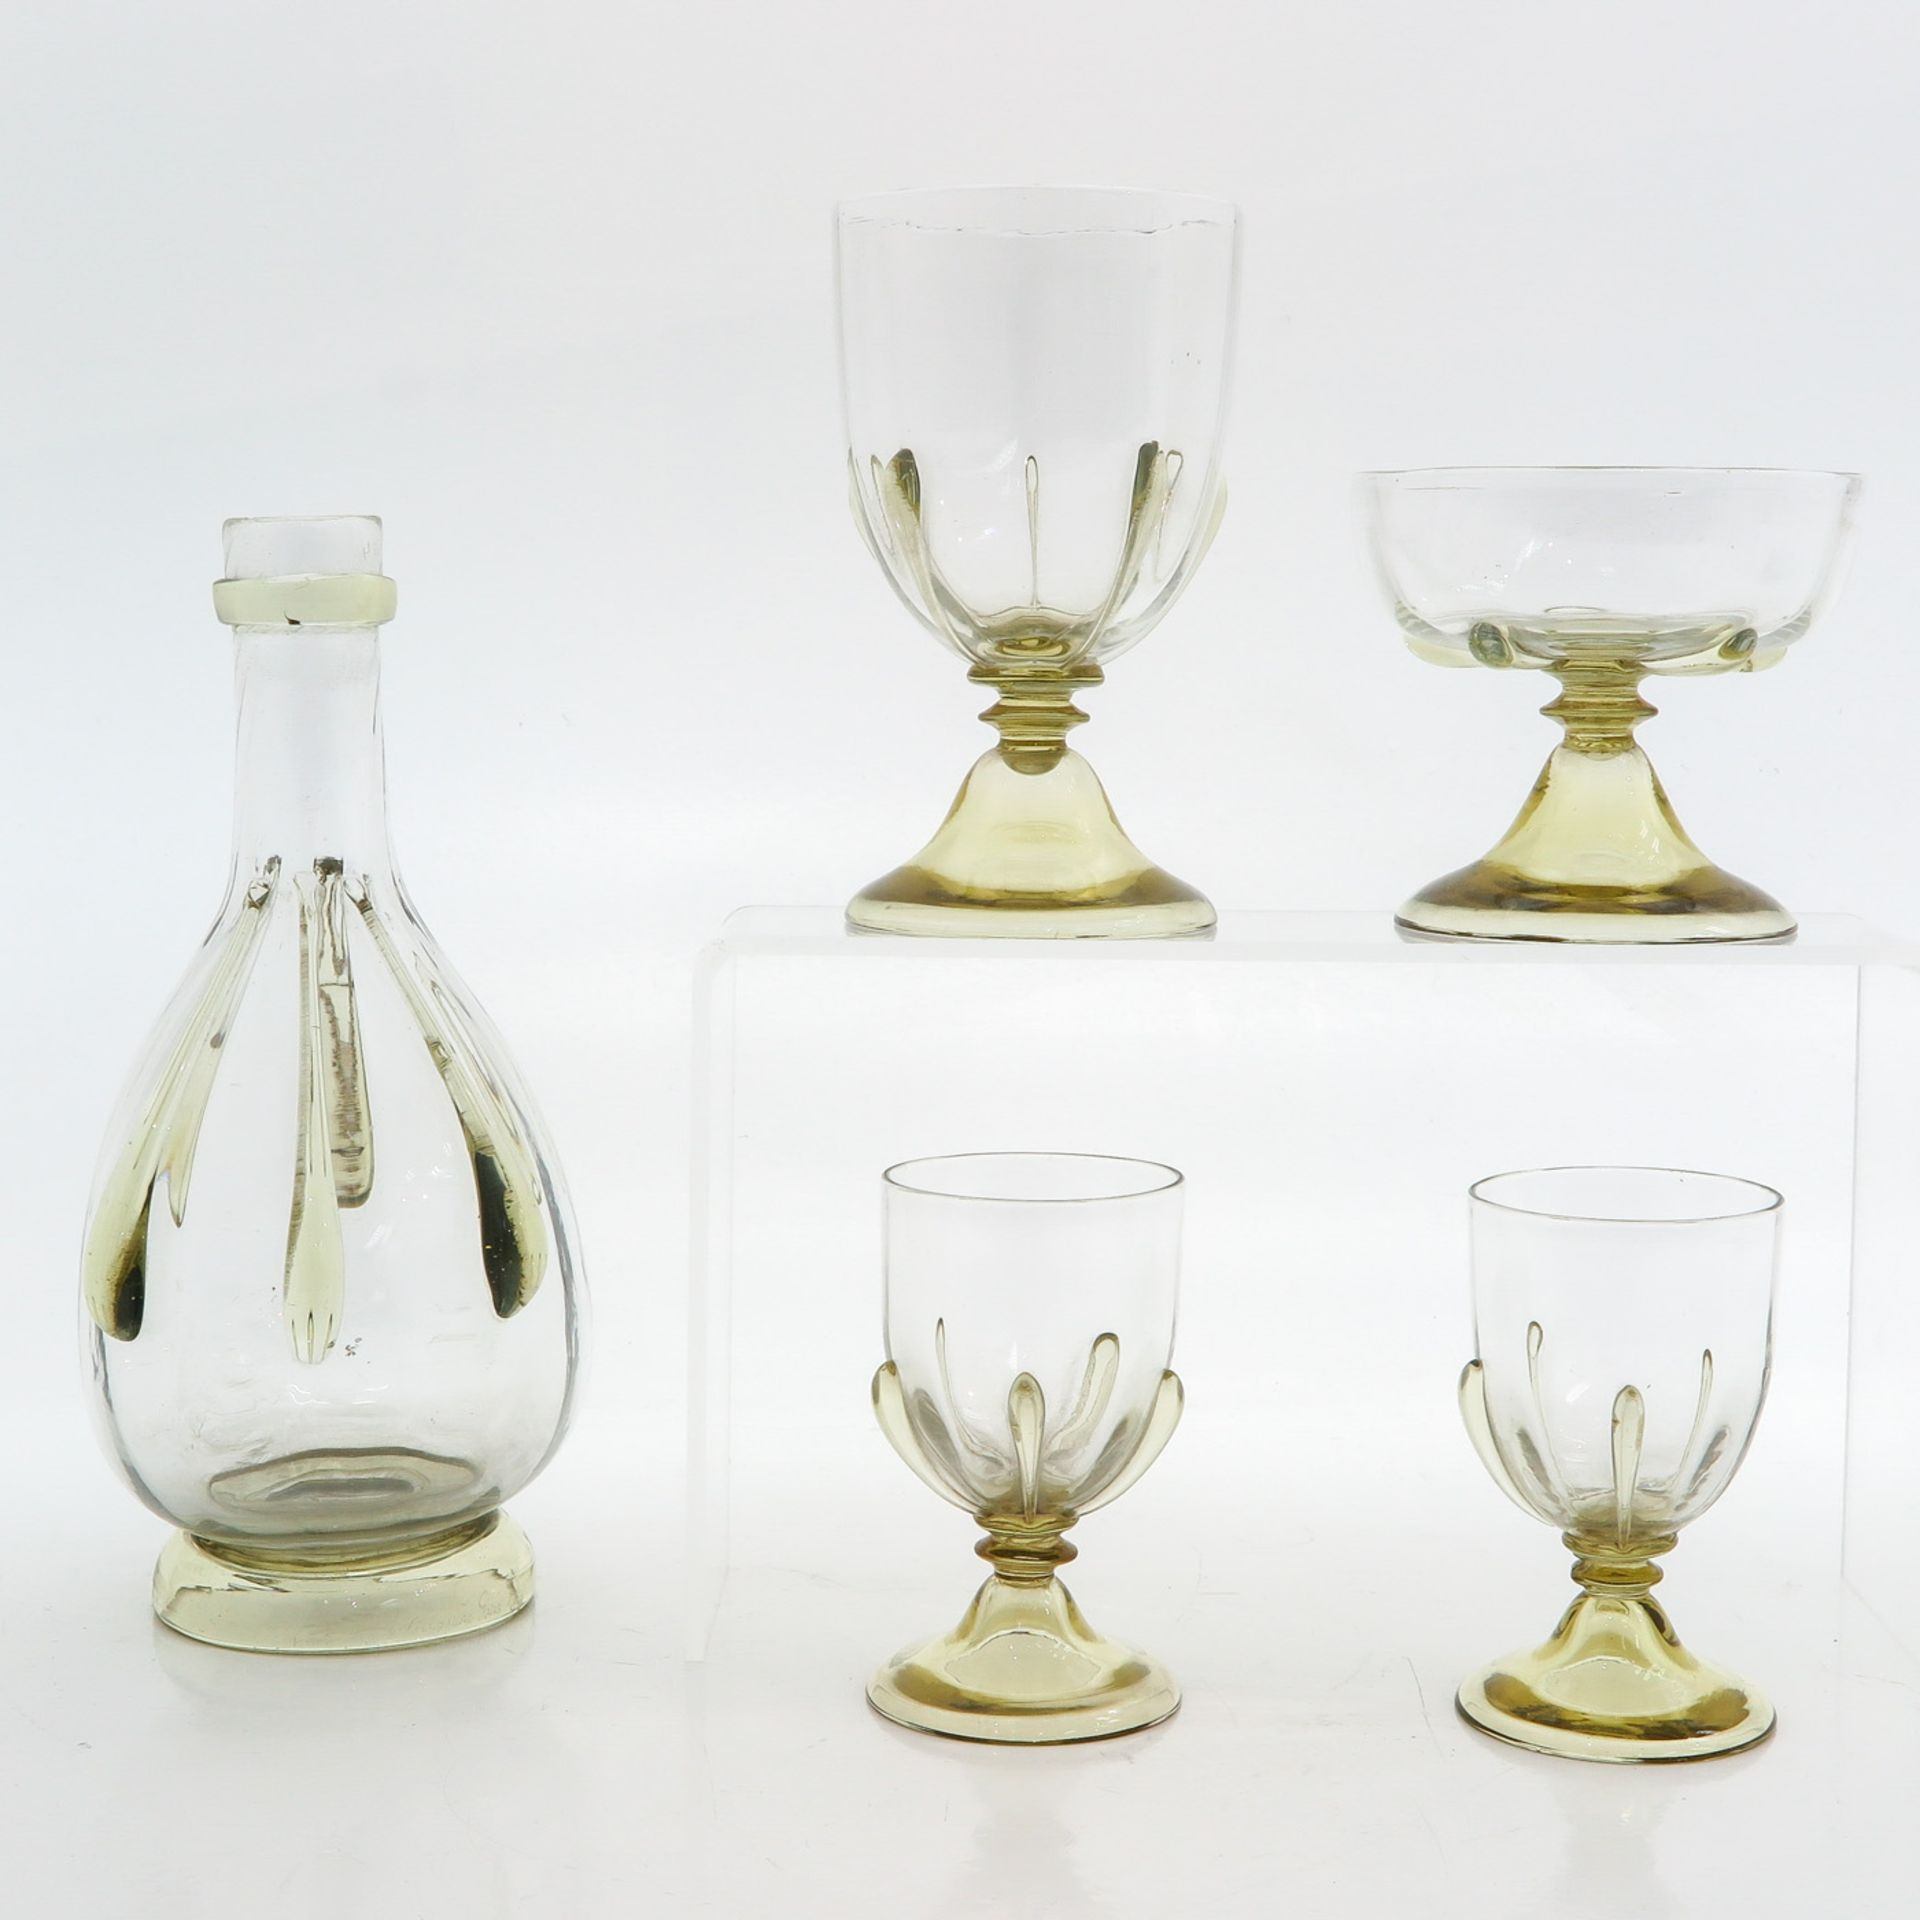 Los 1043 - A Set of Emille Galle Glasses and Decanter